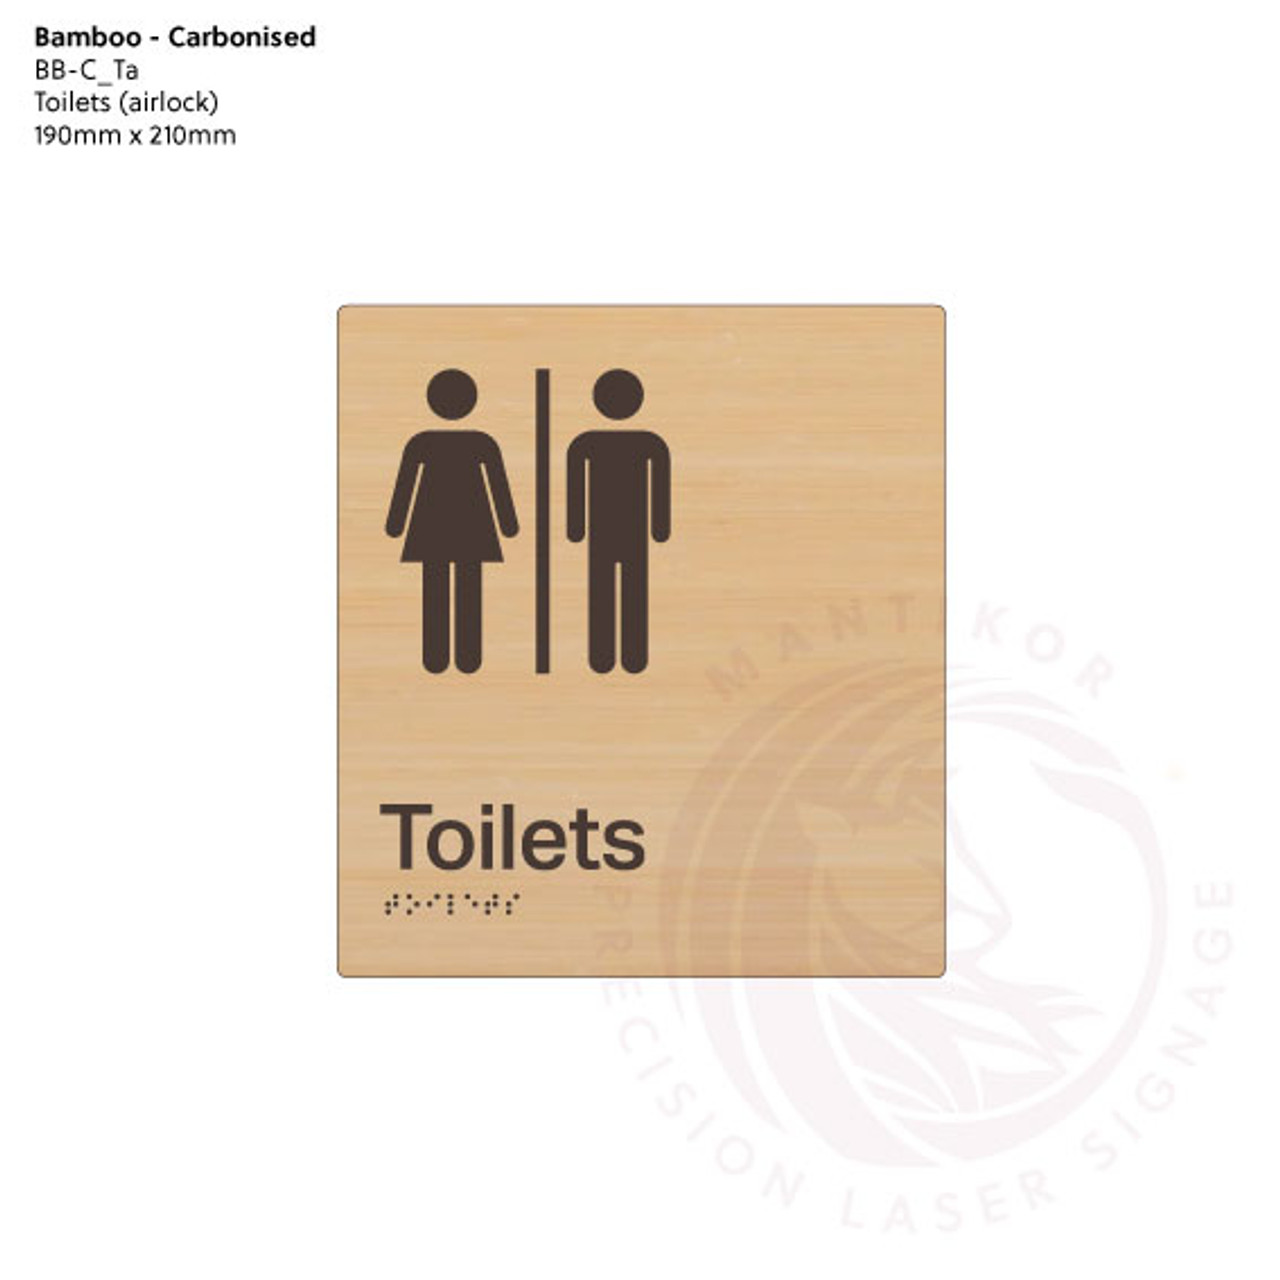 Carbonised Bamboo Tactile Braille Signs - Toilets (Airlock)